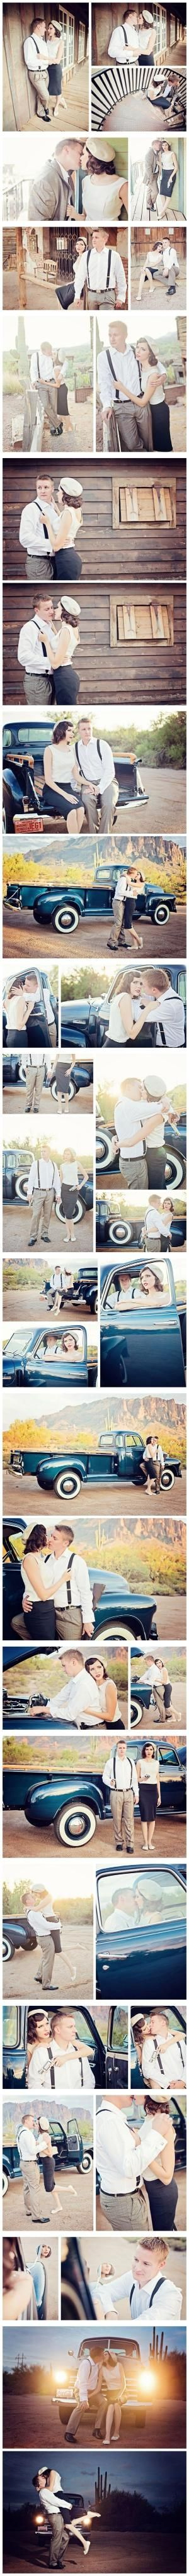 Bonnie and Clyde Themed Engagement Shoot by Kelly Jelic